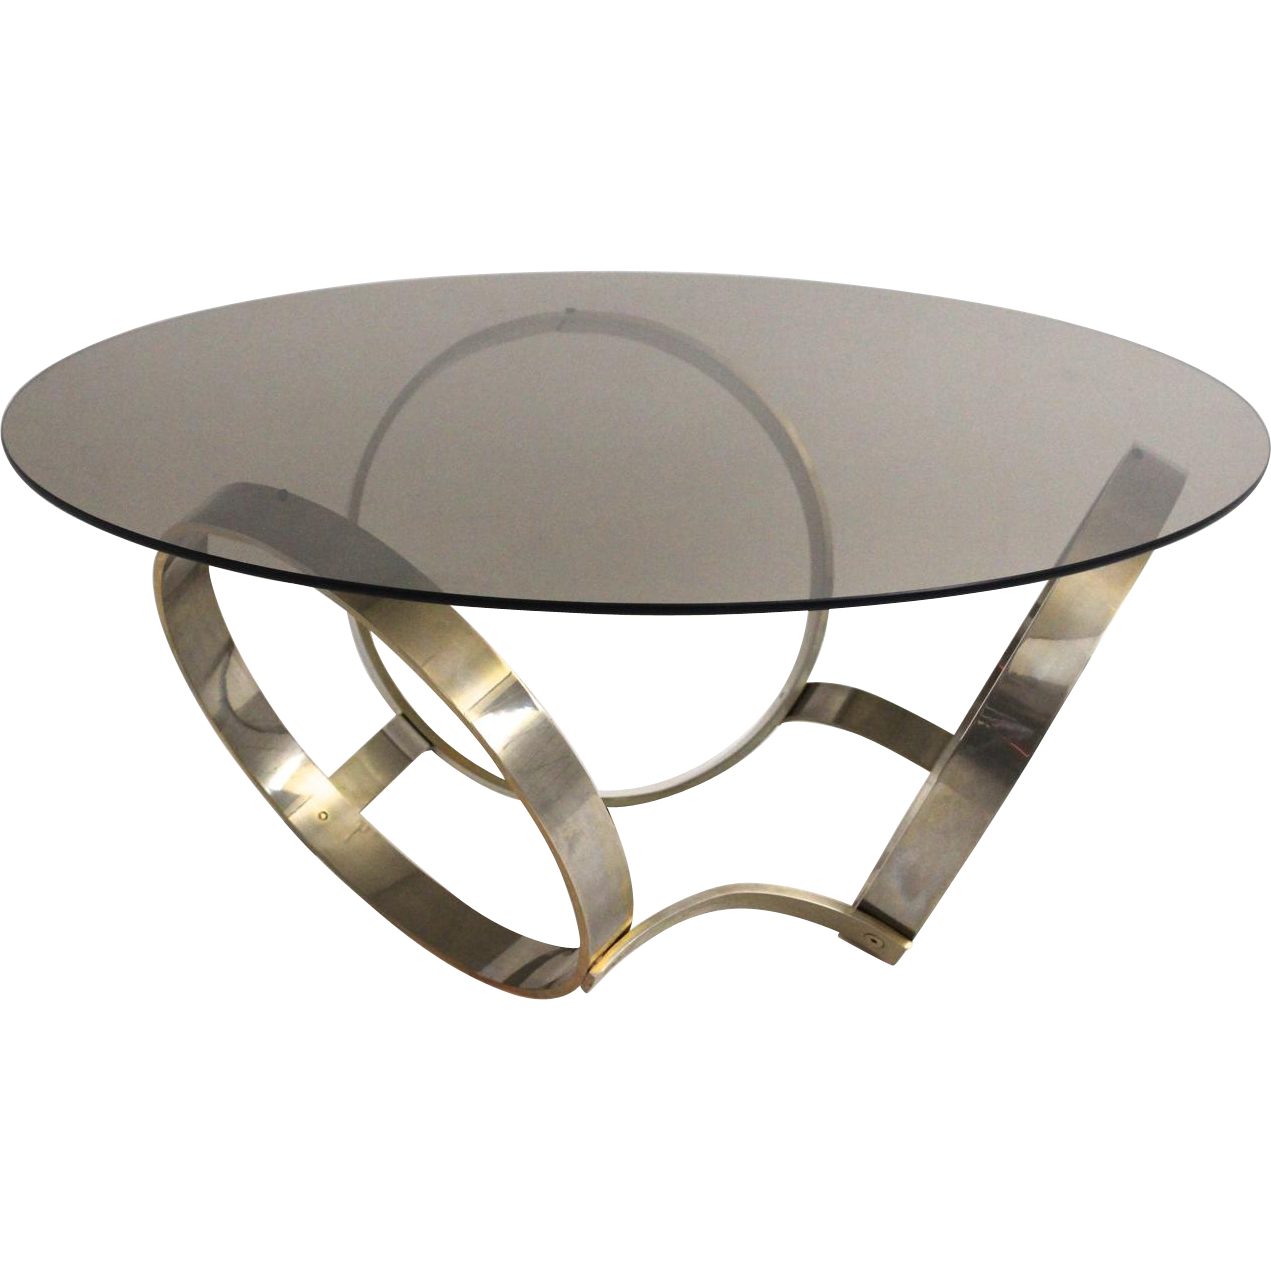 Mid Century Modern Coffee Table With Three Brassed Rings 1970s Mid Century Modern Coffee Table Modern Coffee Tables Coffee Table [ 1271 x 1271 Pixel ]